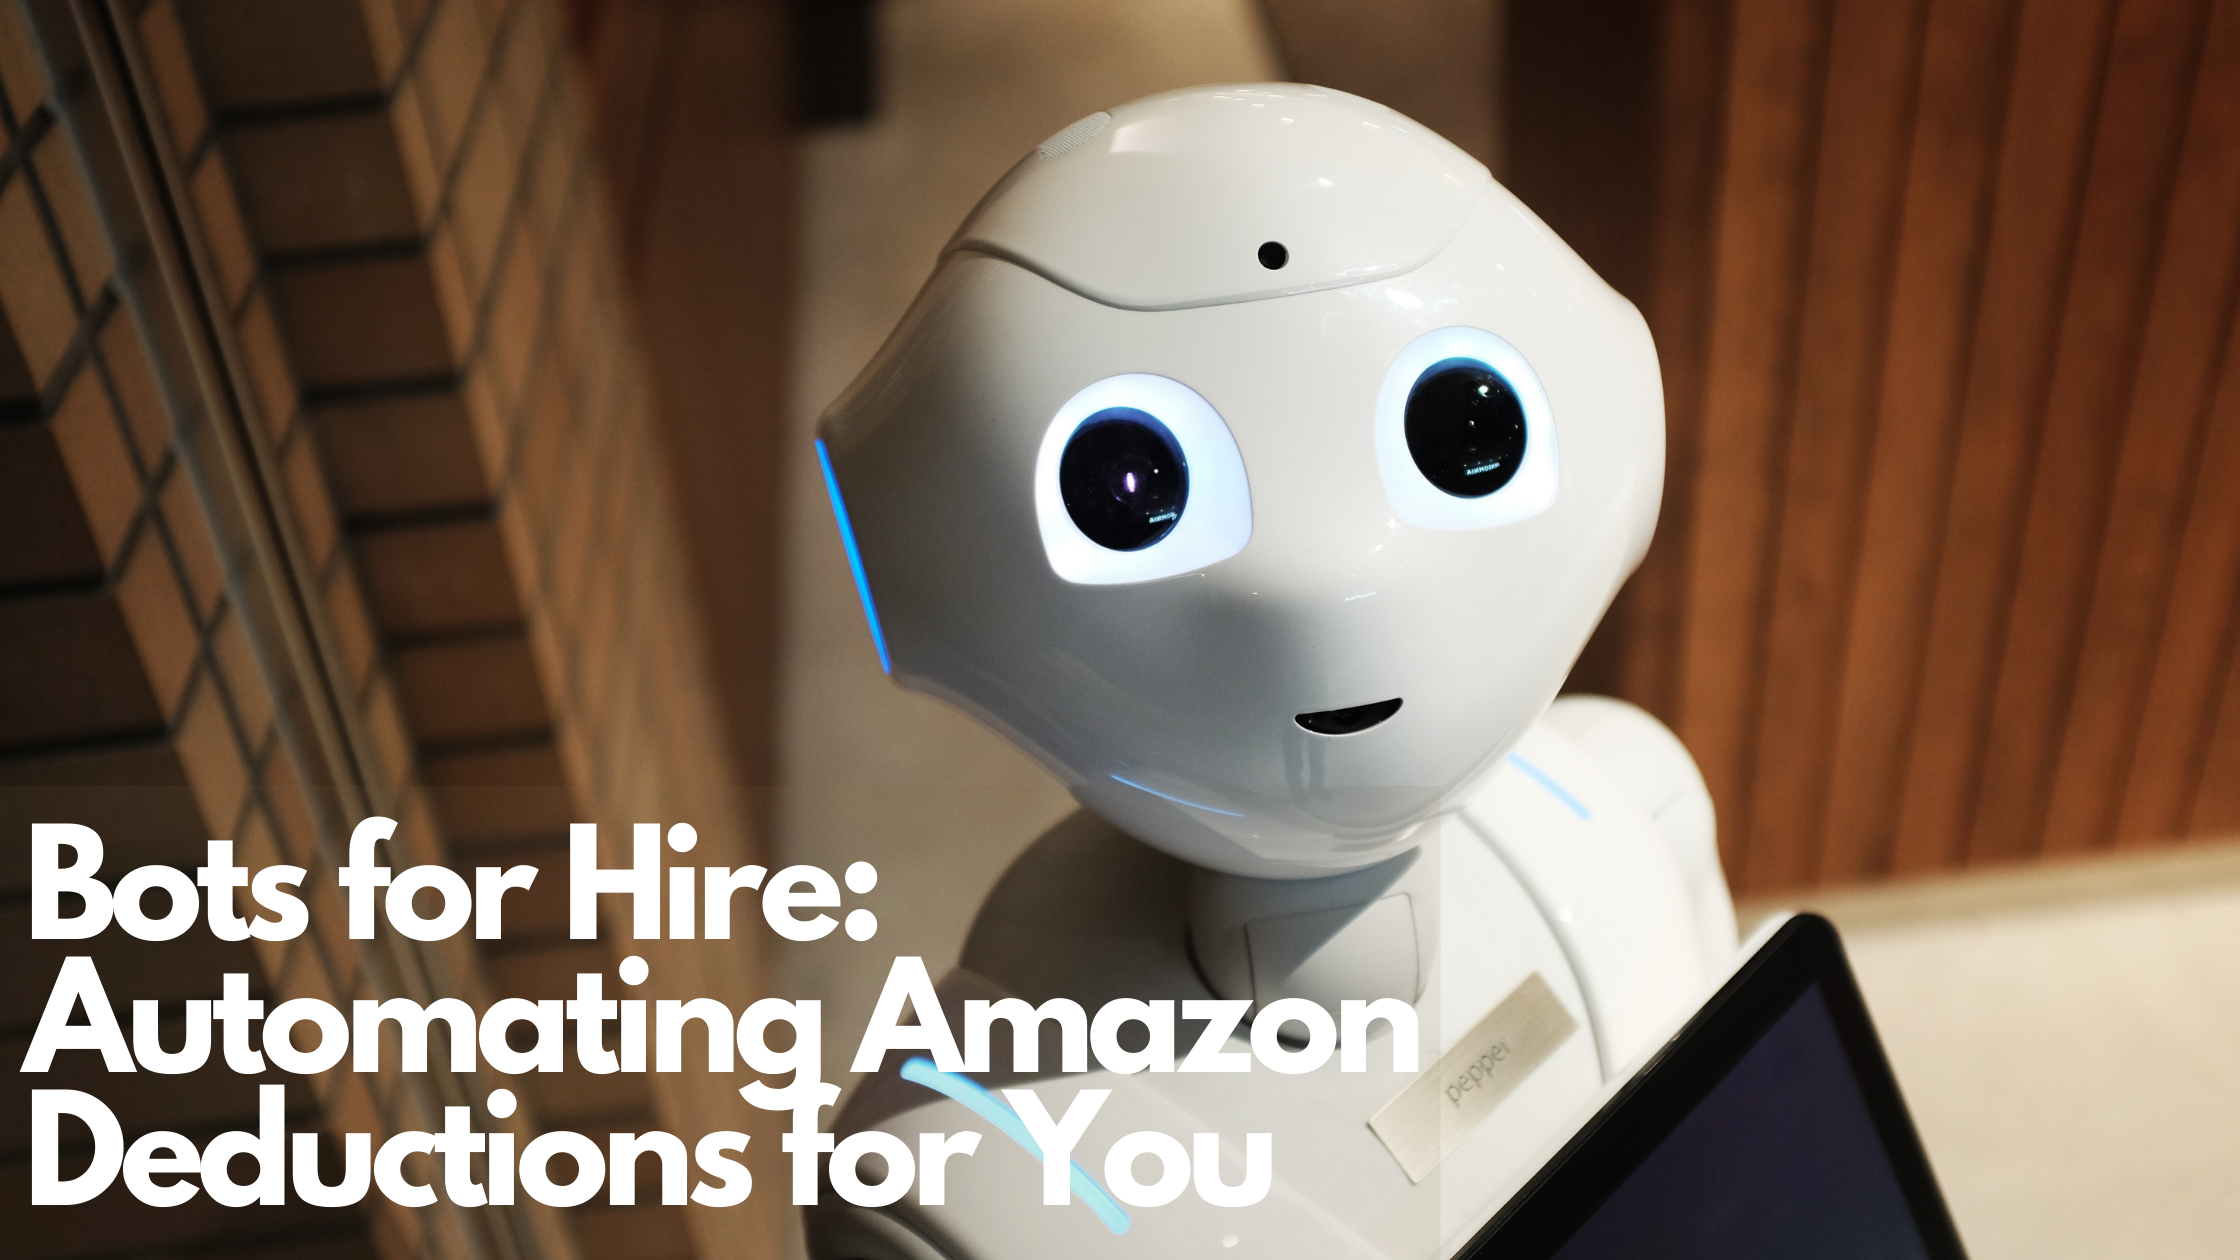 Bots for Hire: Automating Amazon Deductions for You